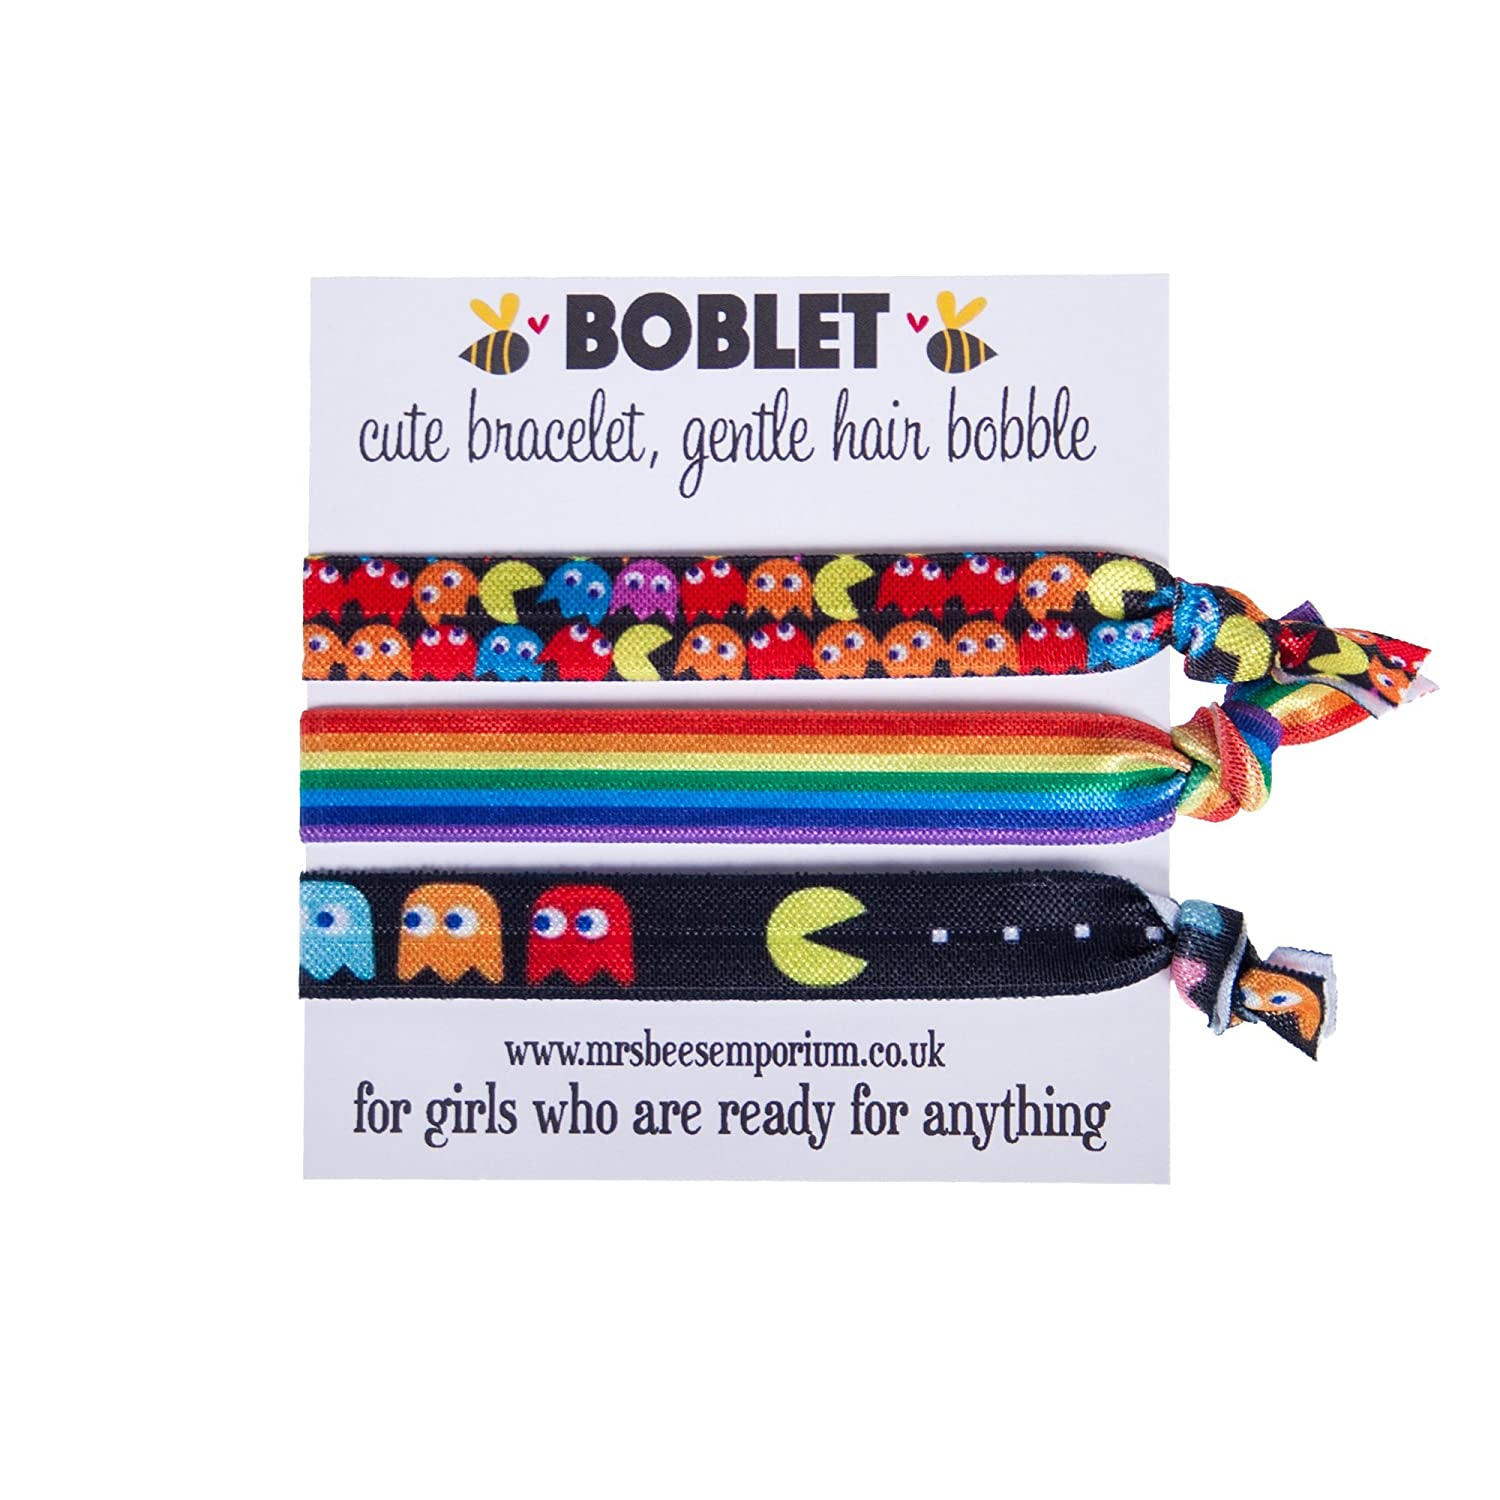 Double Pacman Boblets- Bracelets Hair Bobble Elastic Knotted Ponytail Soft Elastic Ouchless Rainbow